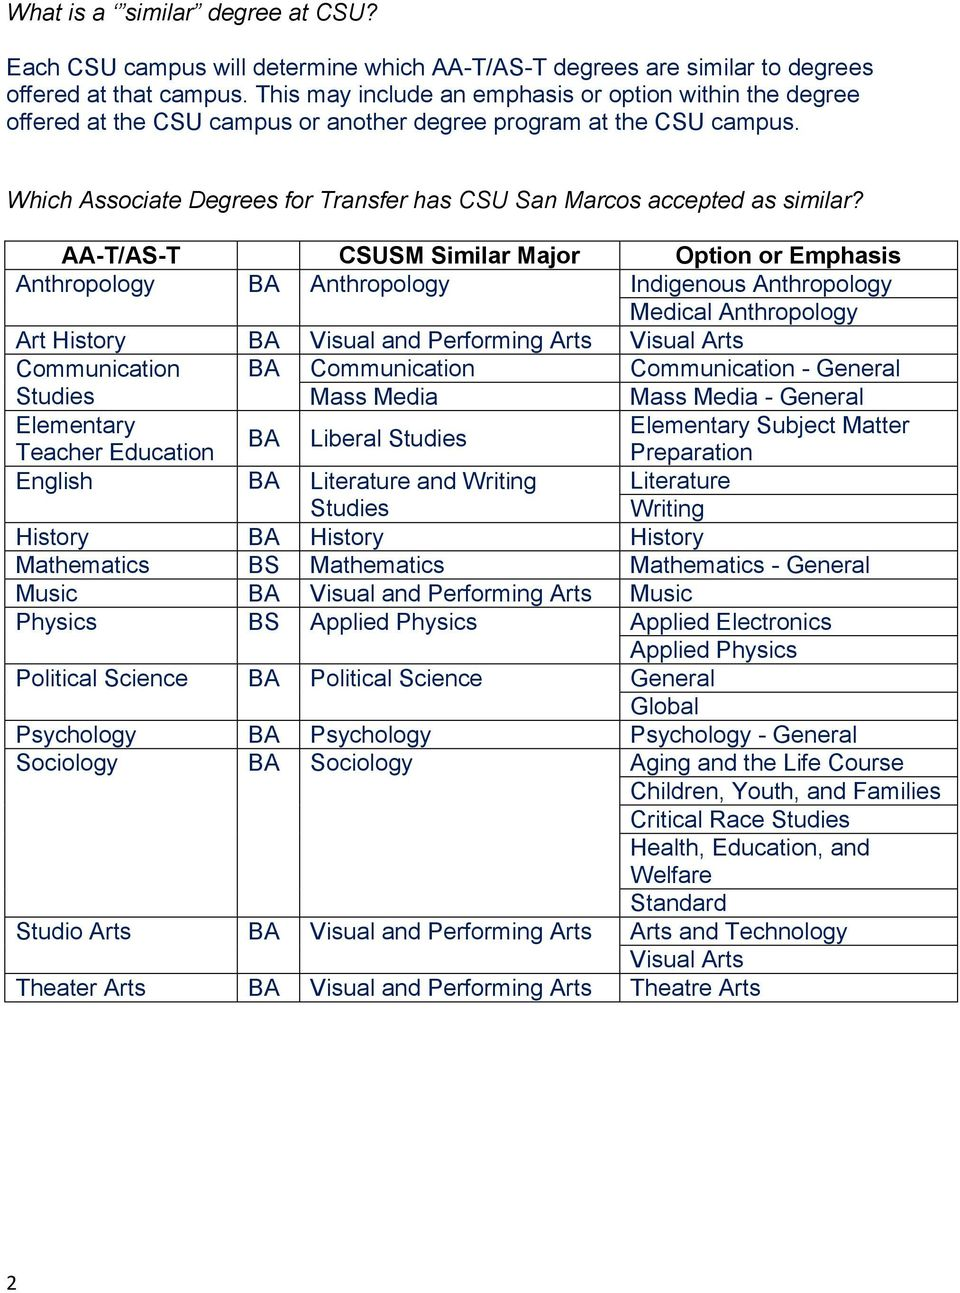 Which Associate Degrees for Transfer has CSU San Marcos accepted as similar?